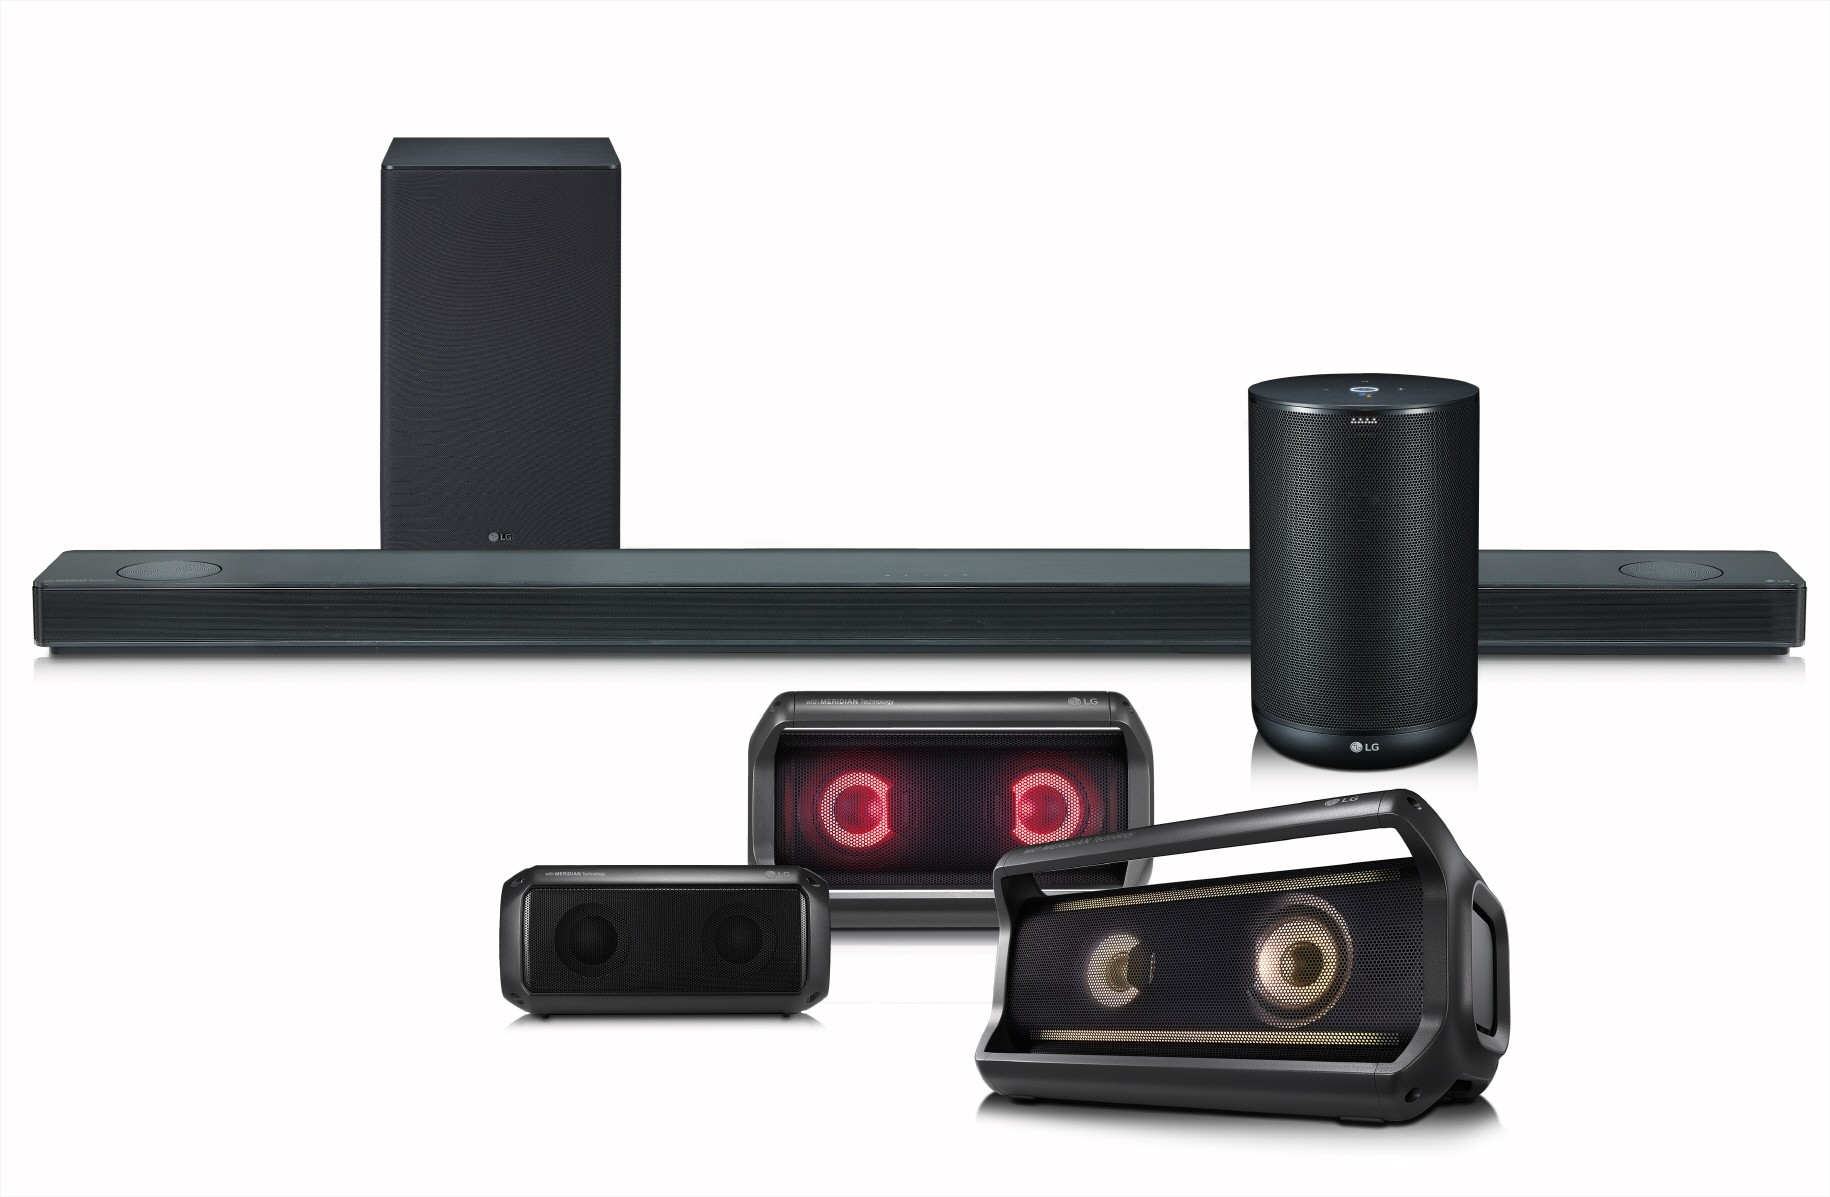 LG's Speaker Lineup including its LG SoundBar, Portable speaker and ThinQ Speaker